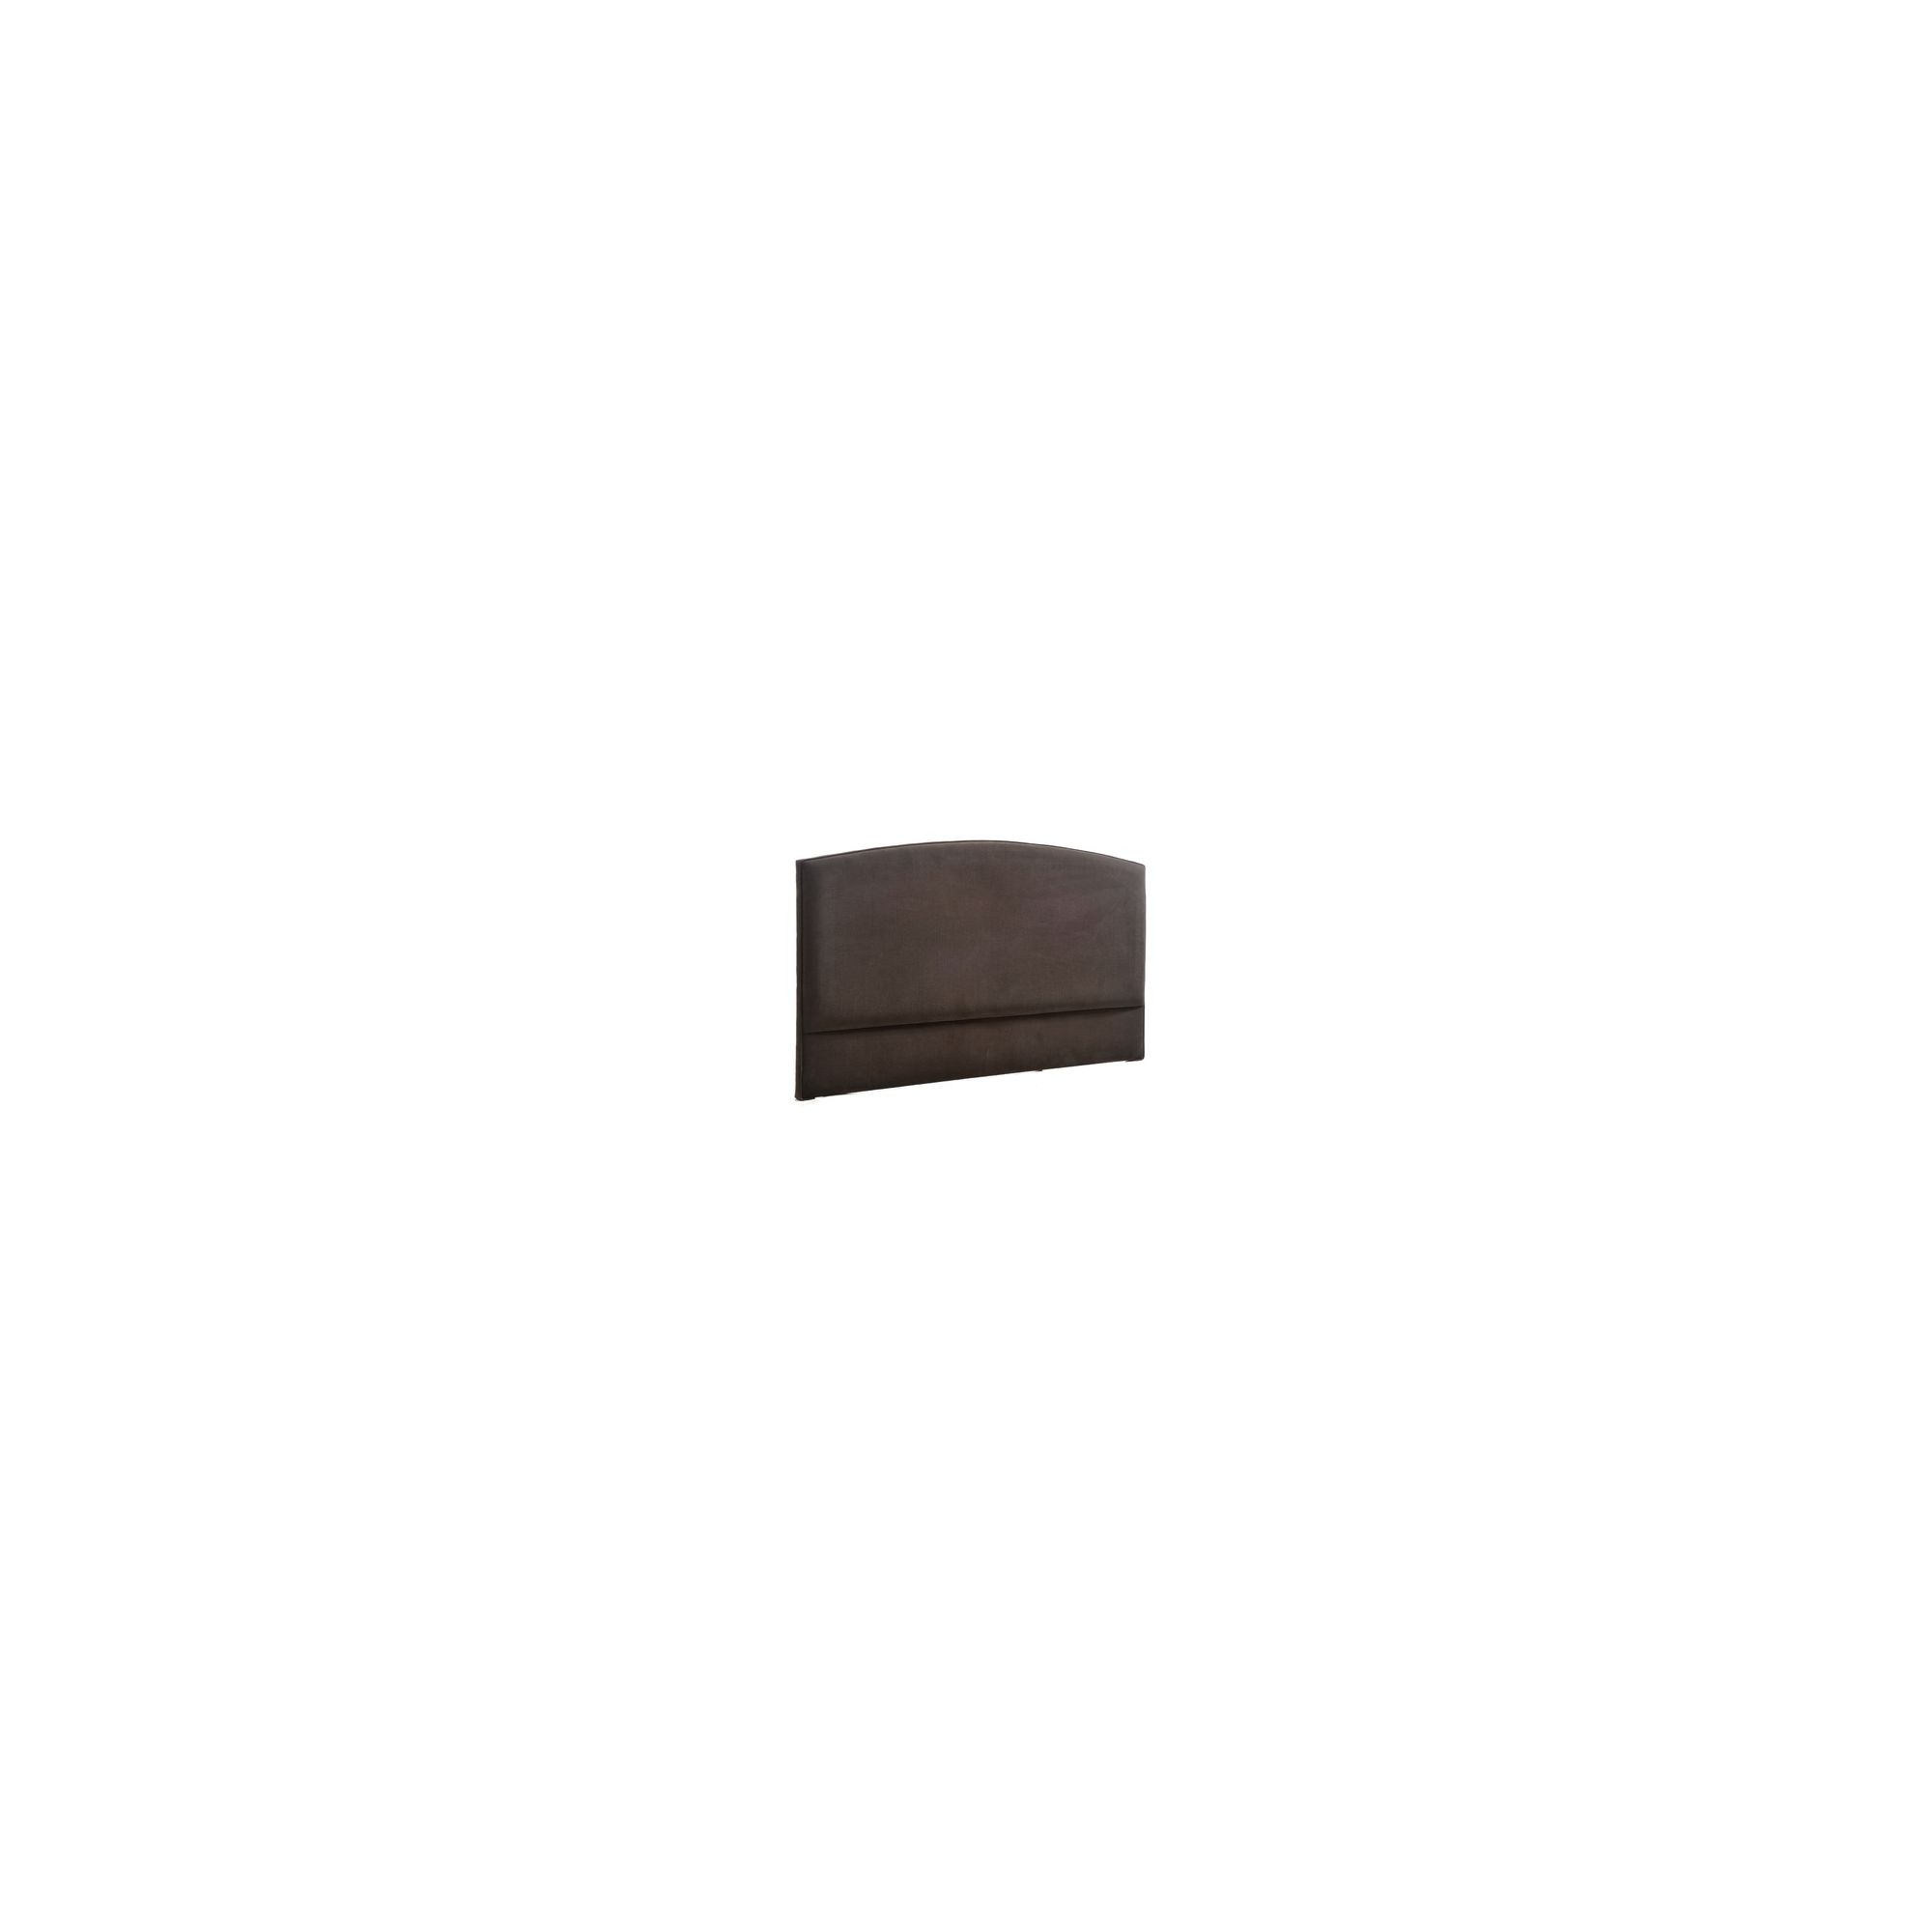 PC Upholstery Manila Headboard - Chocolate - 6' Super King at Tesco Direct